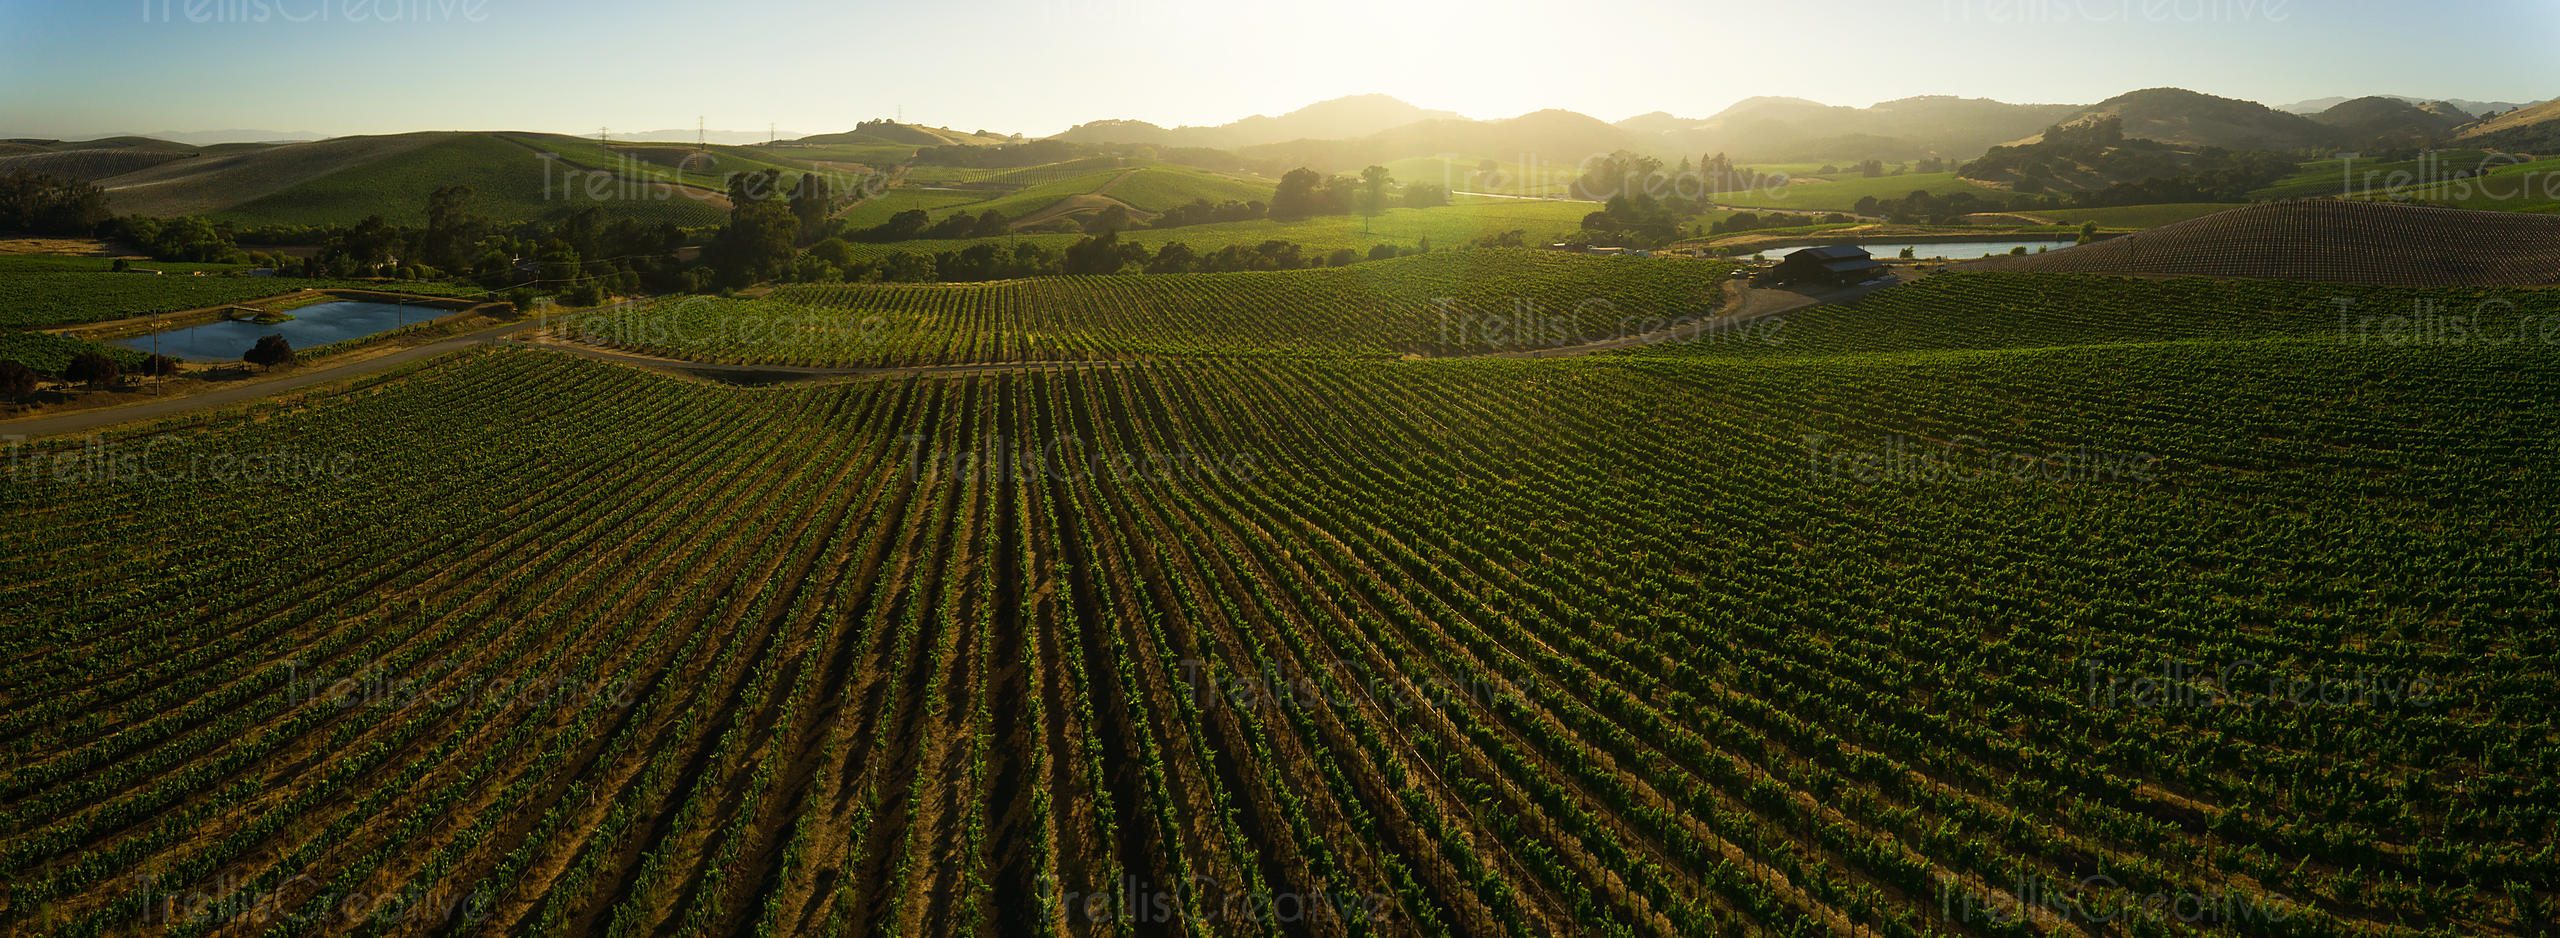 Aerial view of a vineyard landscape in Napa valley